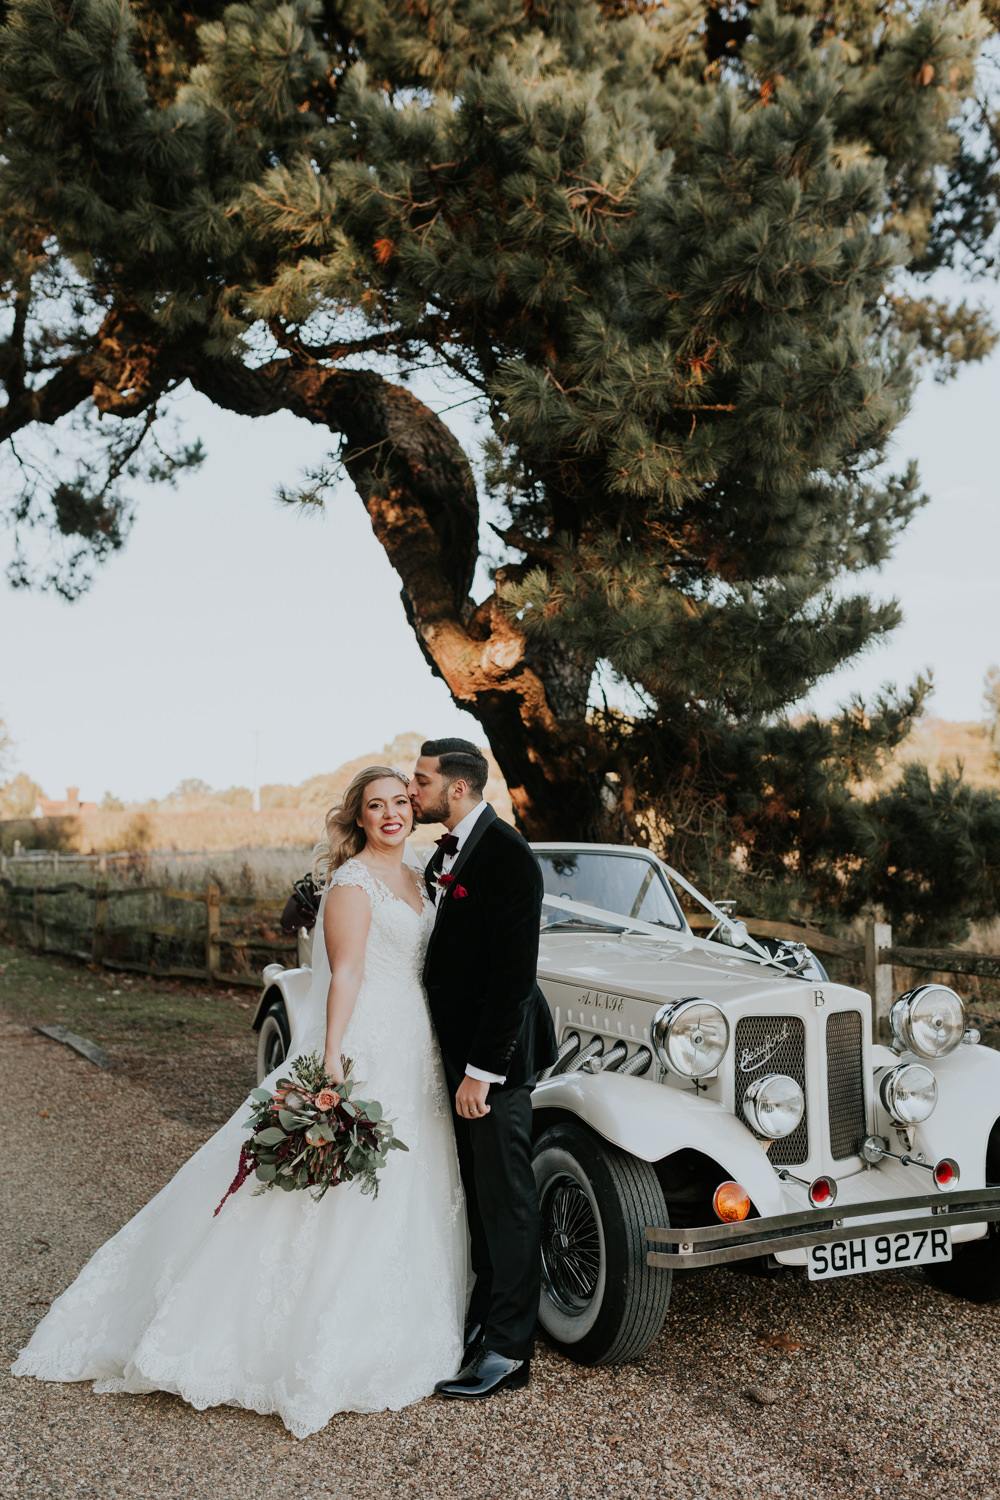 Bride Bridal Cap Sleeve Lace Overlay Dress Gown Veil Velvet Tuxedo Burgundy Bow Tie Groom Bouquet Vintage Car Transport Gaynes Park Wedding Kate Gray Photography